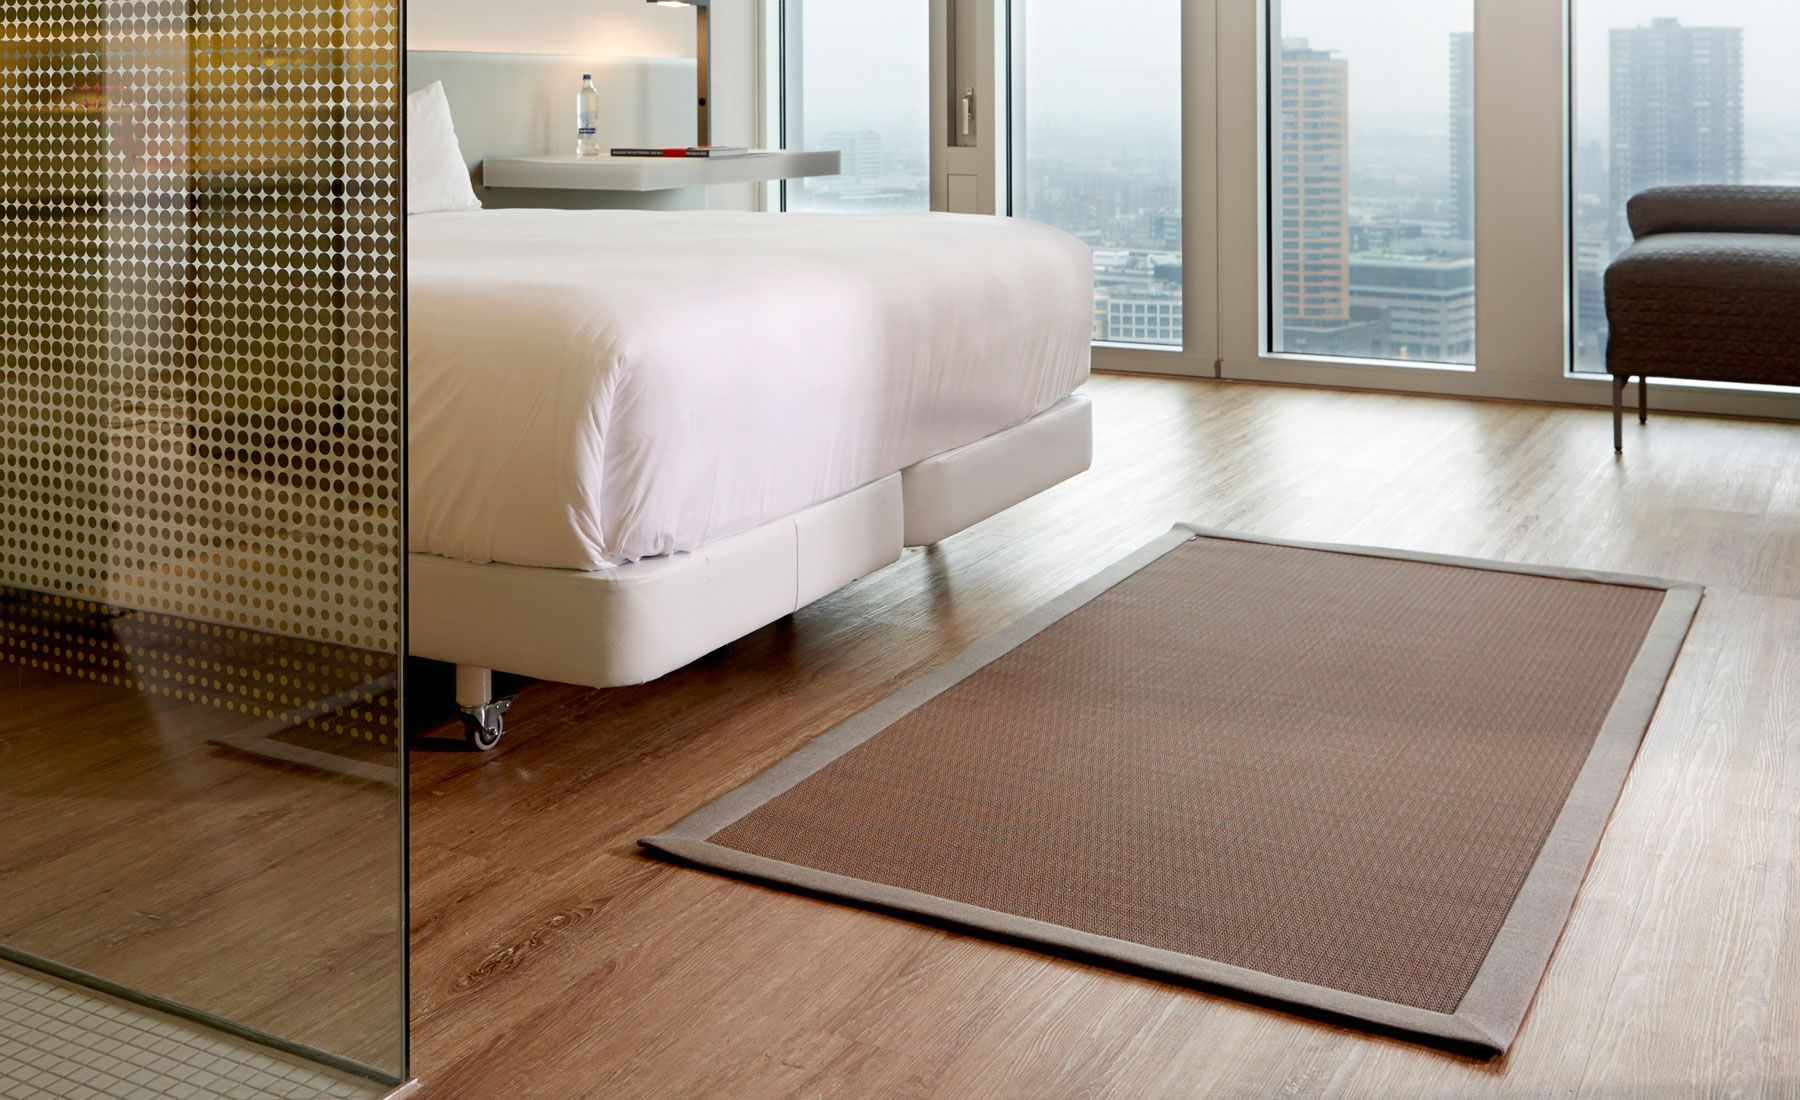 In Out Woven Vinyl Rugs By Son Indoor Hotel Room Rug